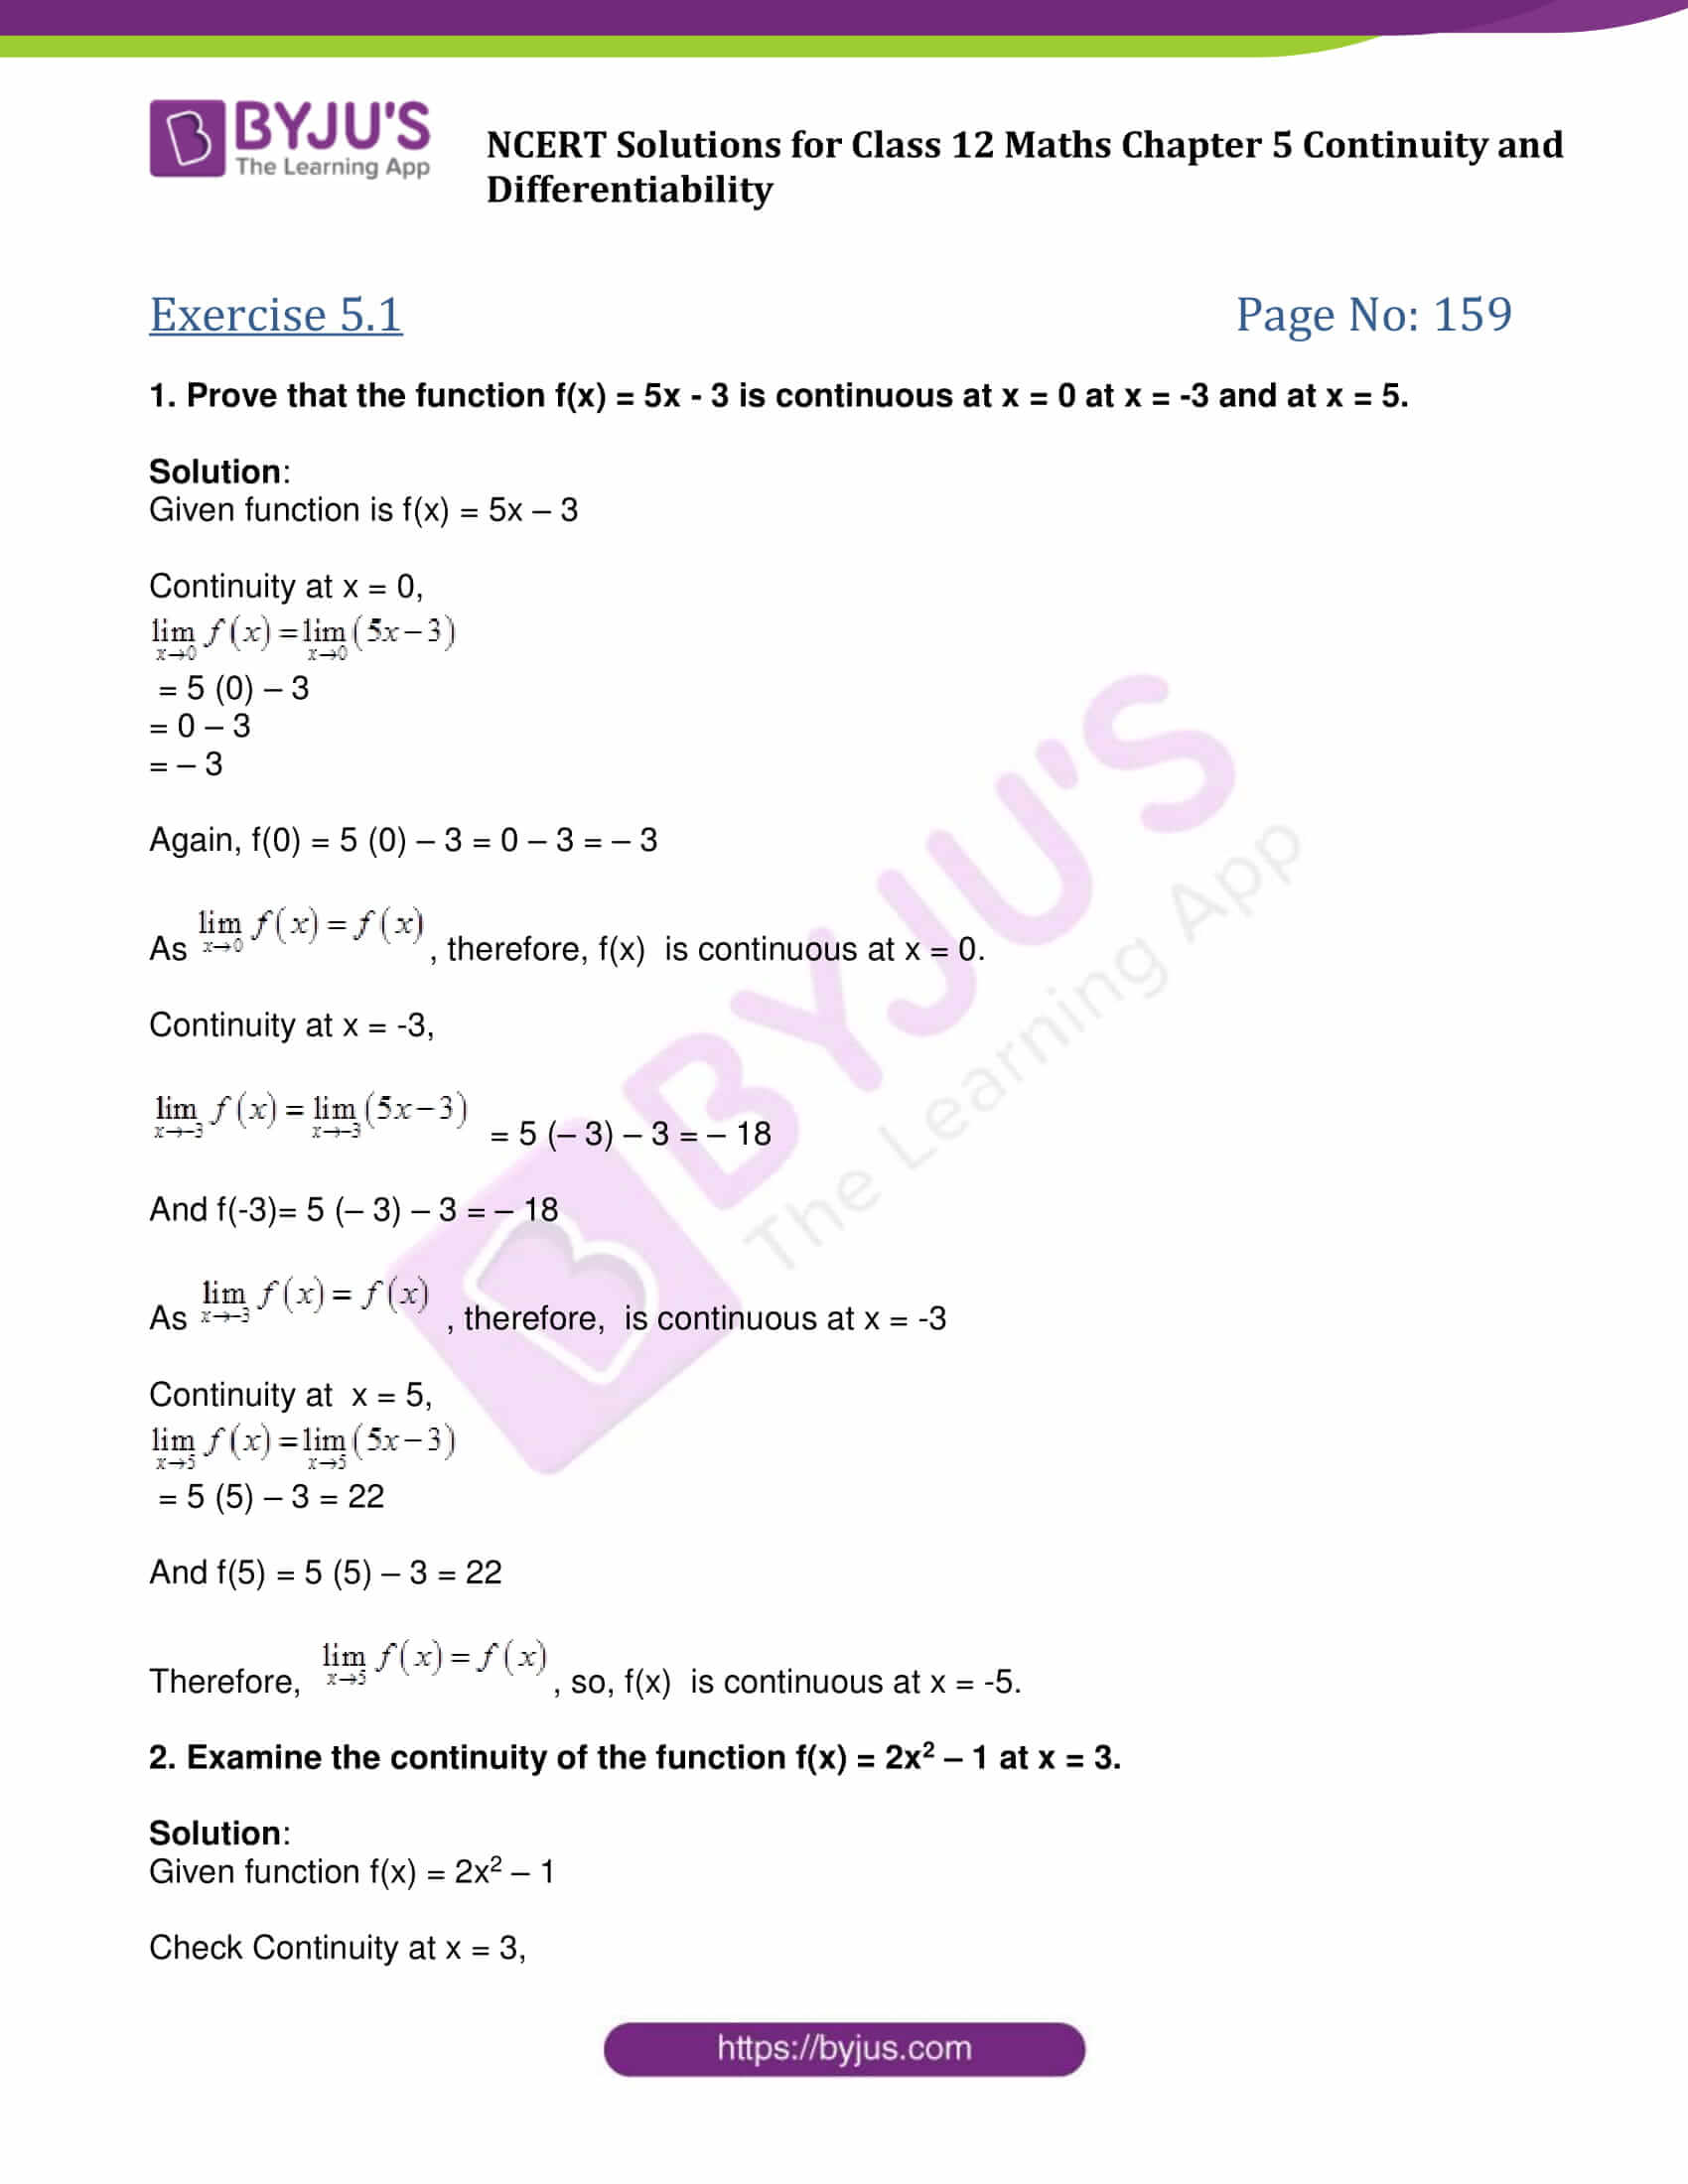 NCERT Solutions Class 12 Maths Chapter 5 Continuity and